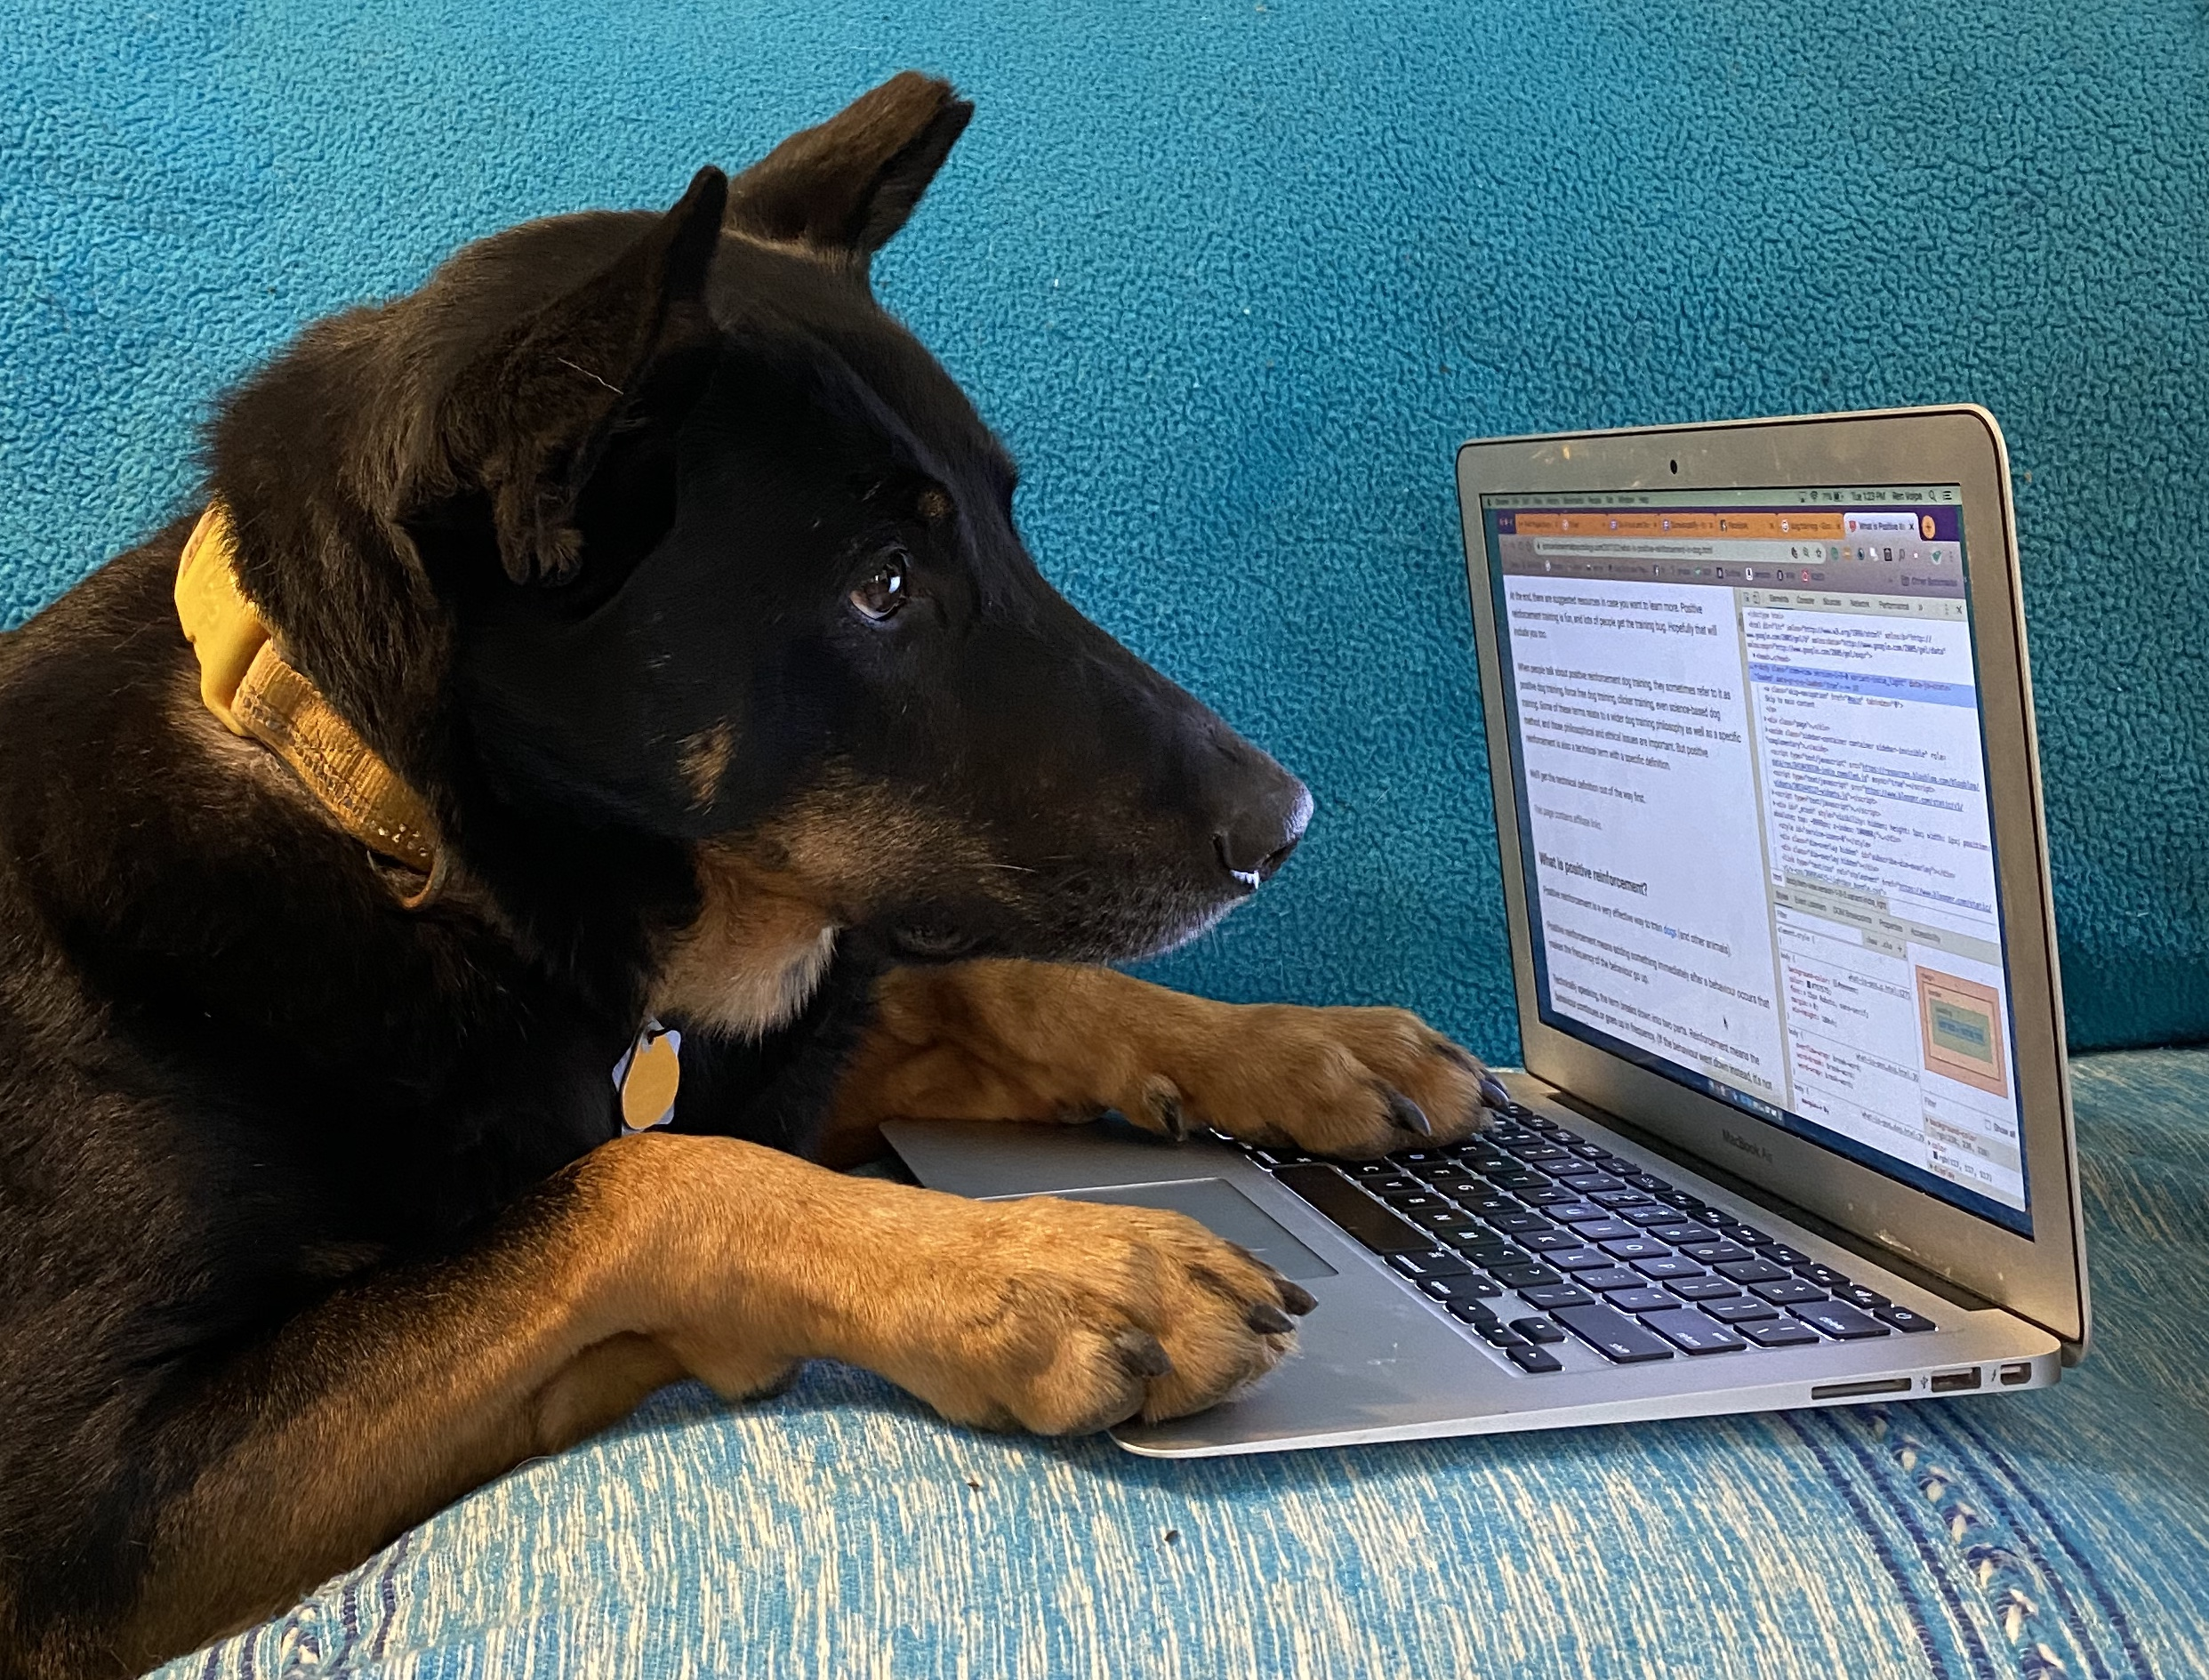 Black and brown dog working on a laptop